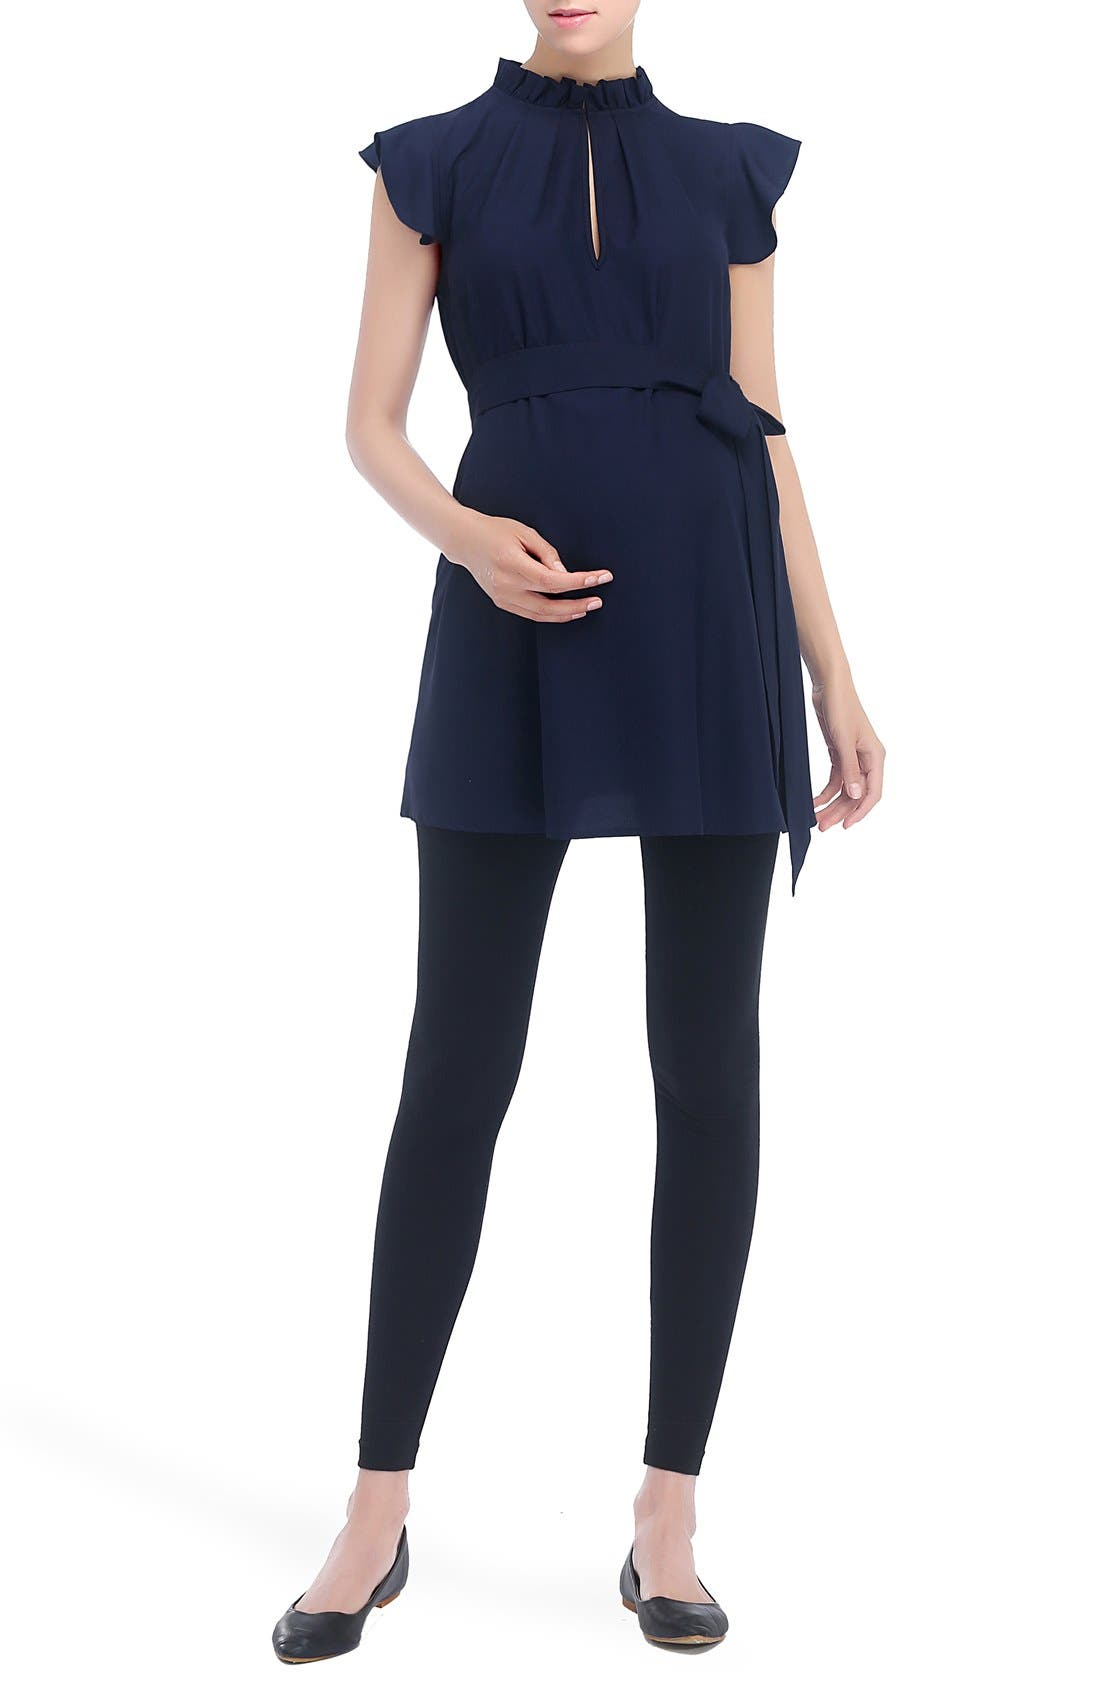 KIMI AND KAI Karlena Flutter Sleeve Belted Maternity Top, Main, color, NAVY